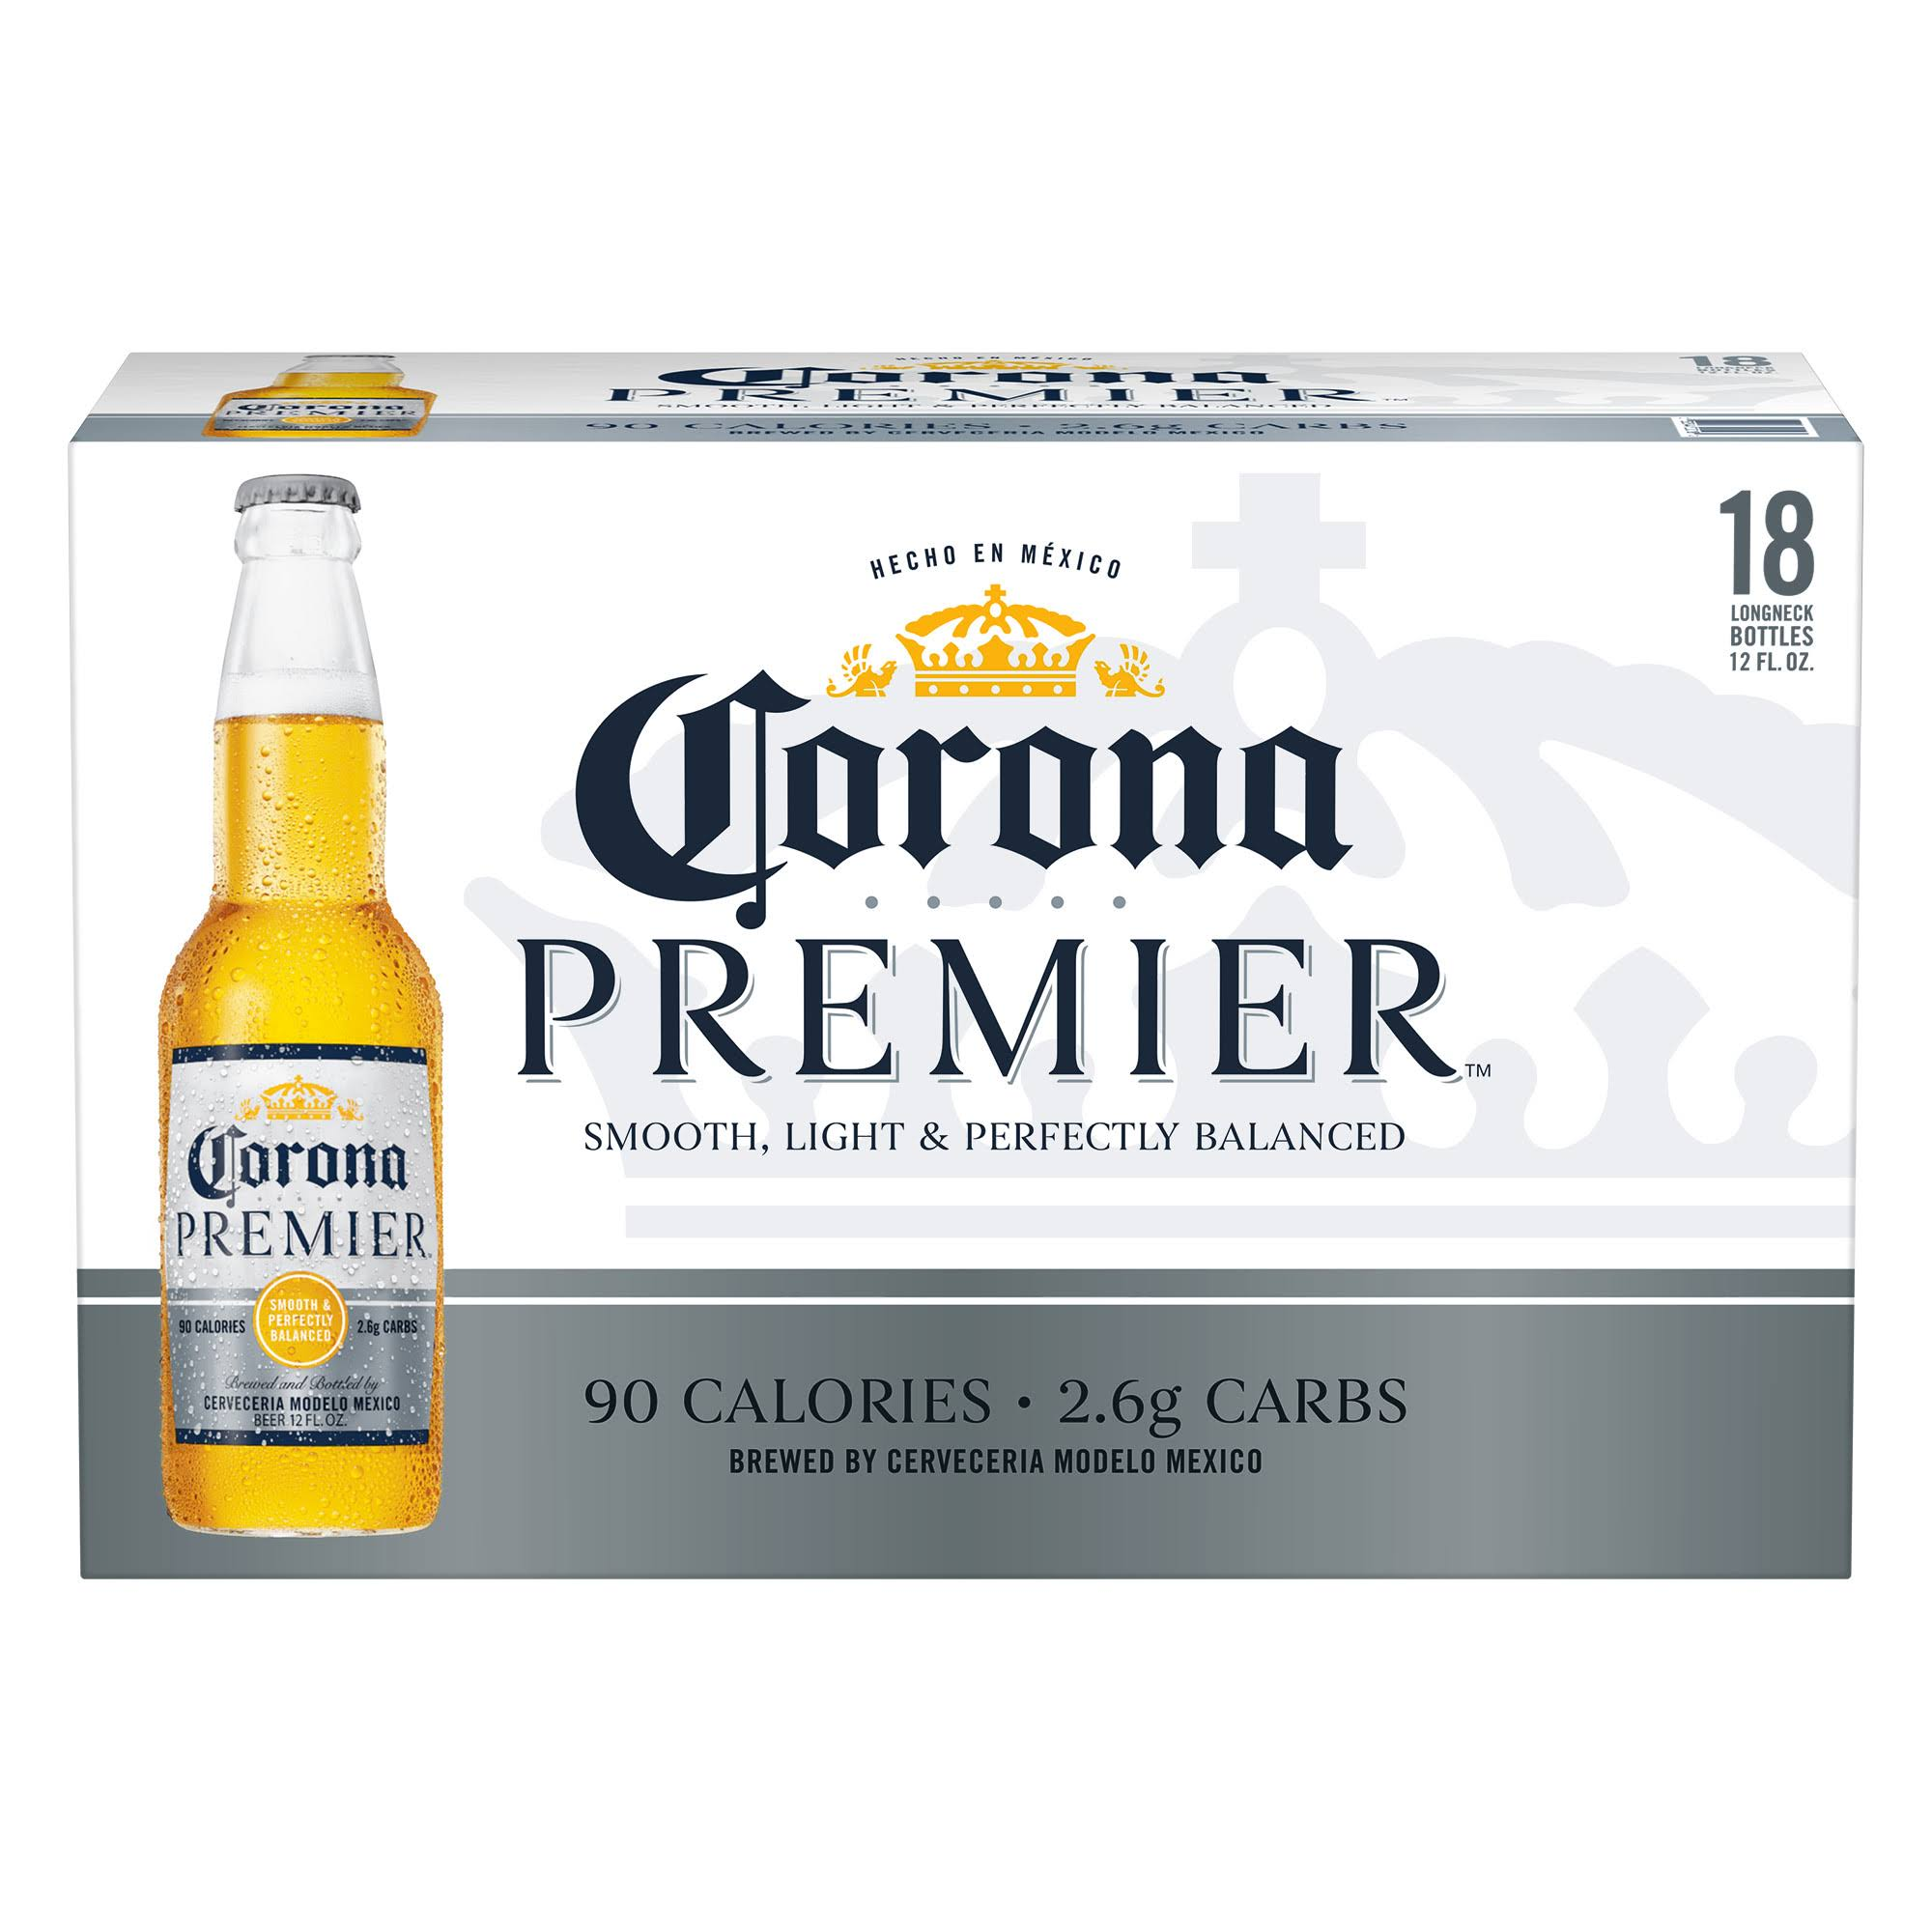 Corona Premier Mexican Import Beer Bottles - 12 fl oz